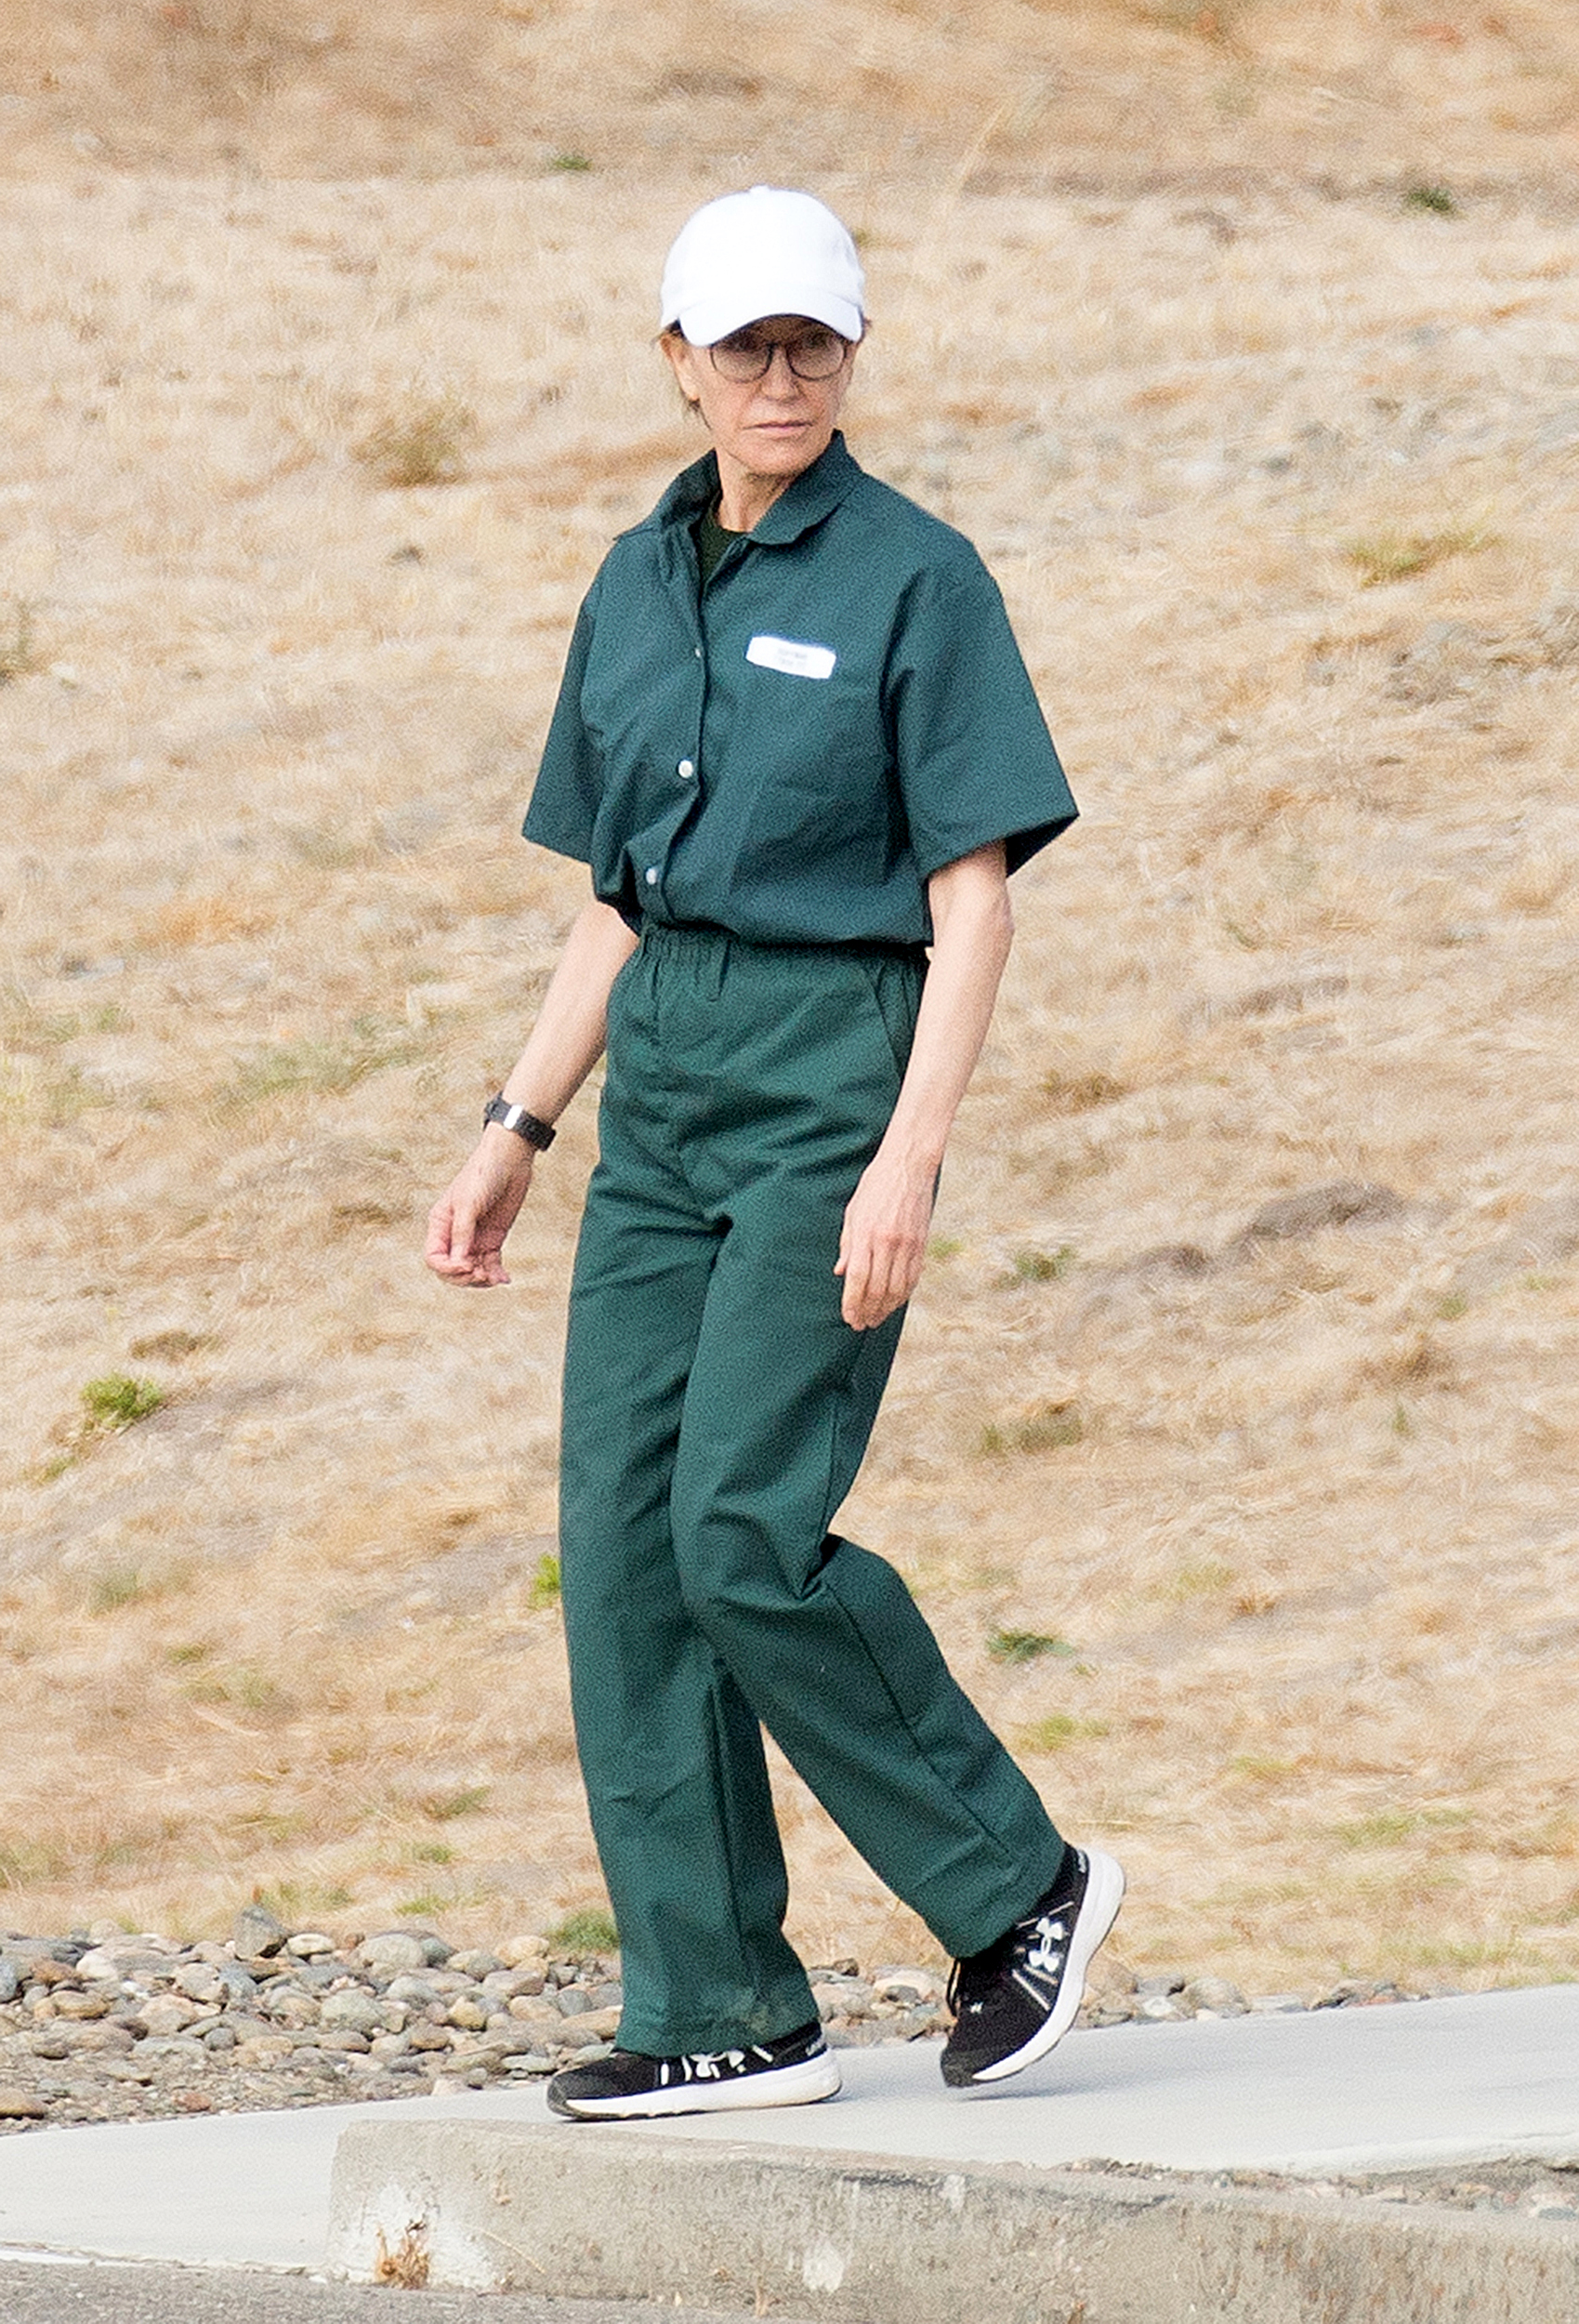 Image: Felicity Huffman at the Federal Correctional Institution in Dublin, Calif., on Oct. 19, 2019.